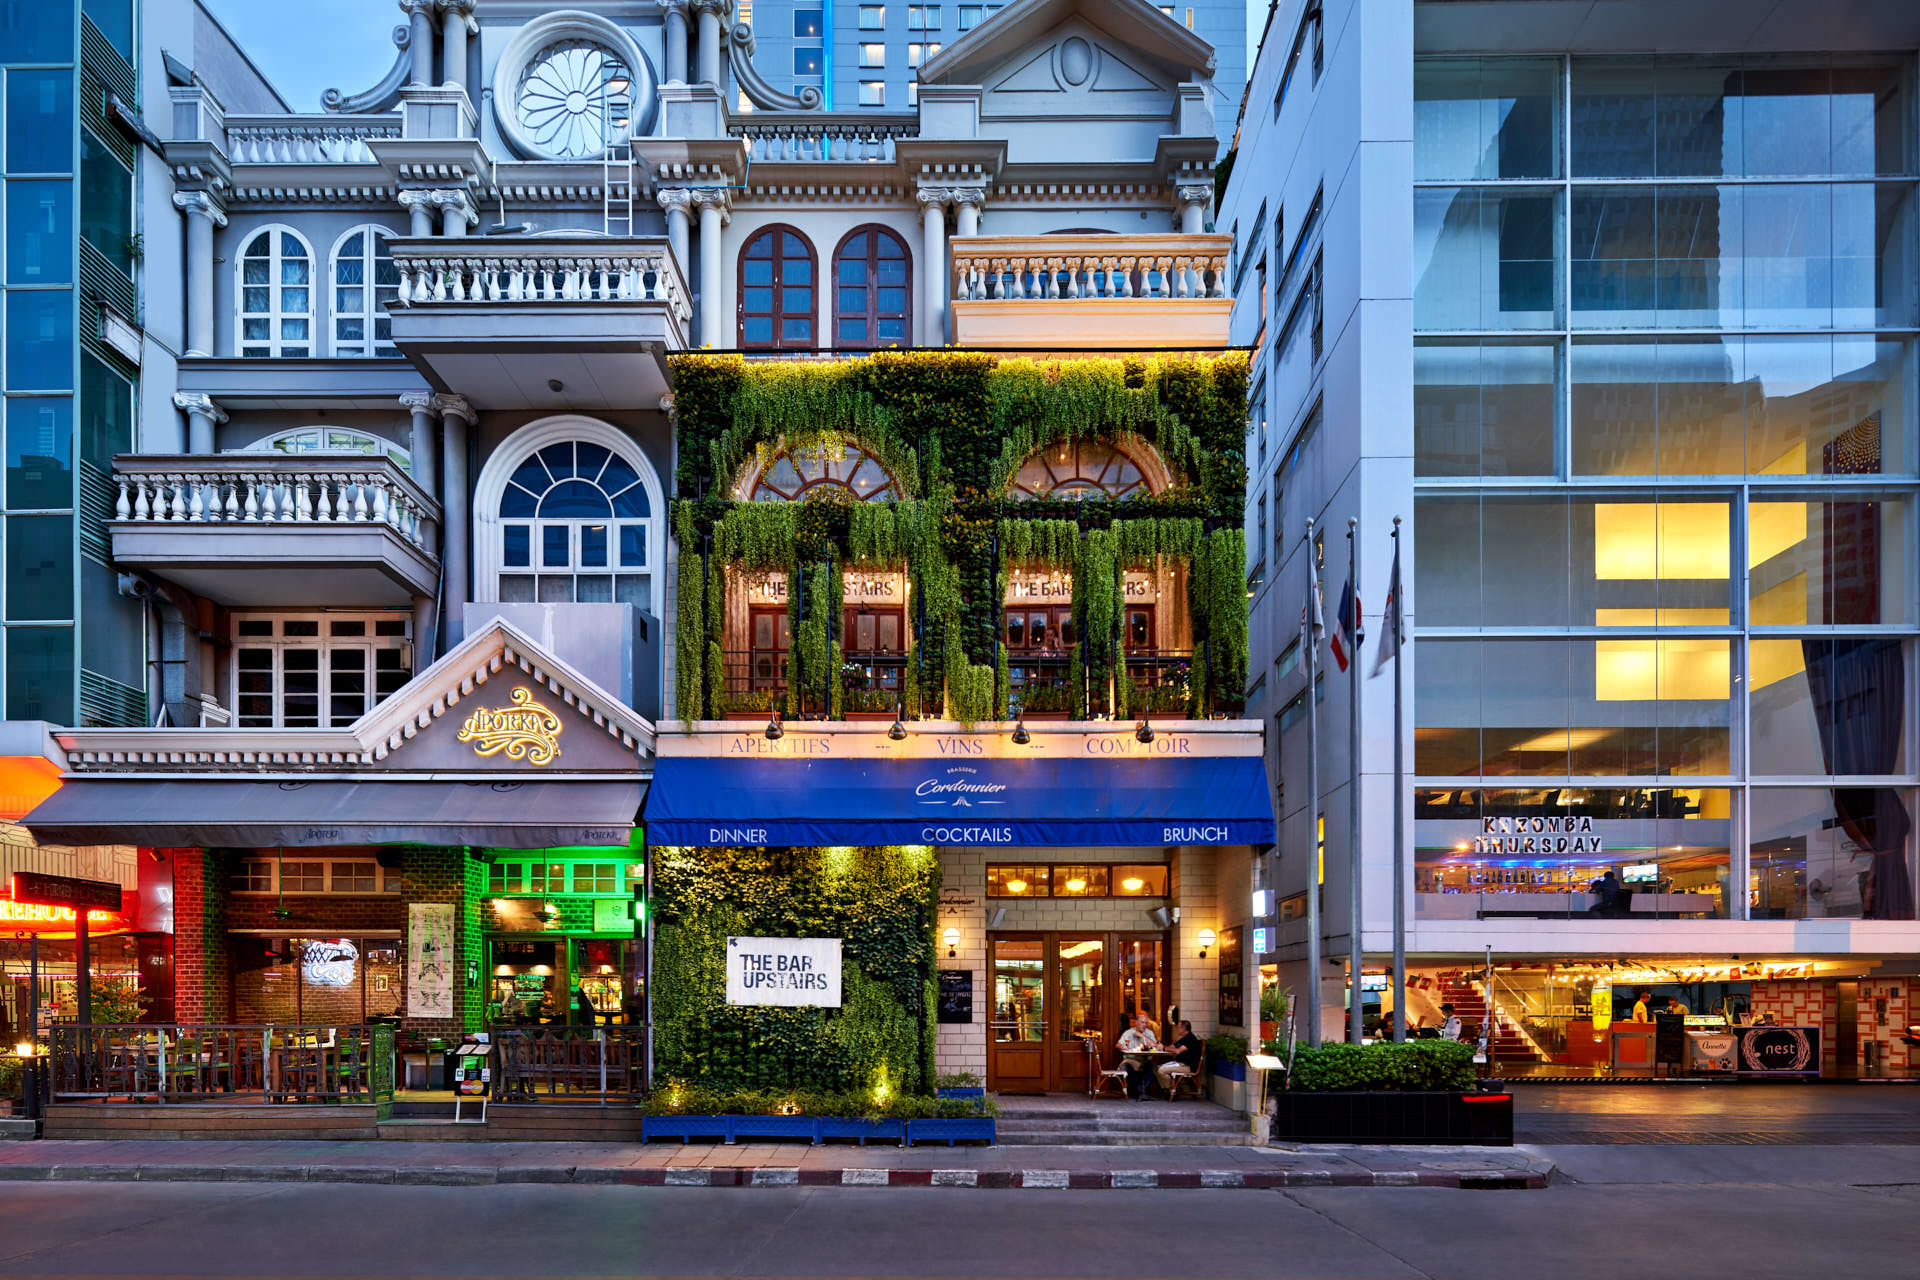 """Architectural photography of """"The Bar Upstairs"""" in bangkok with greenery covering the facade of the building."""